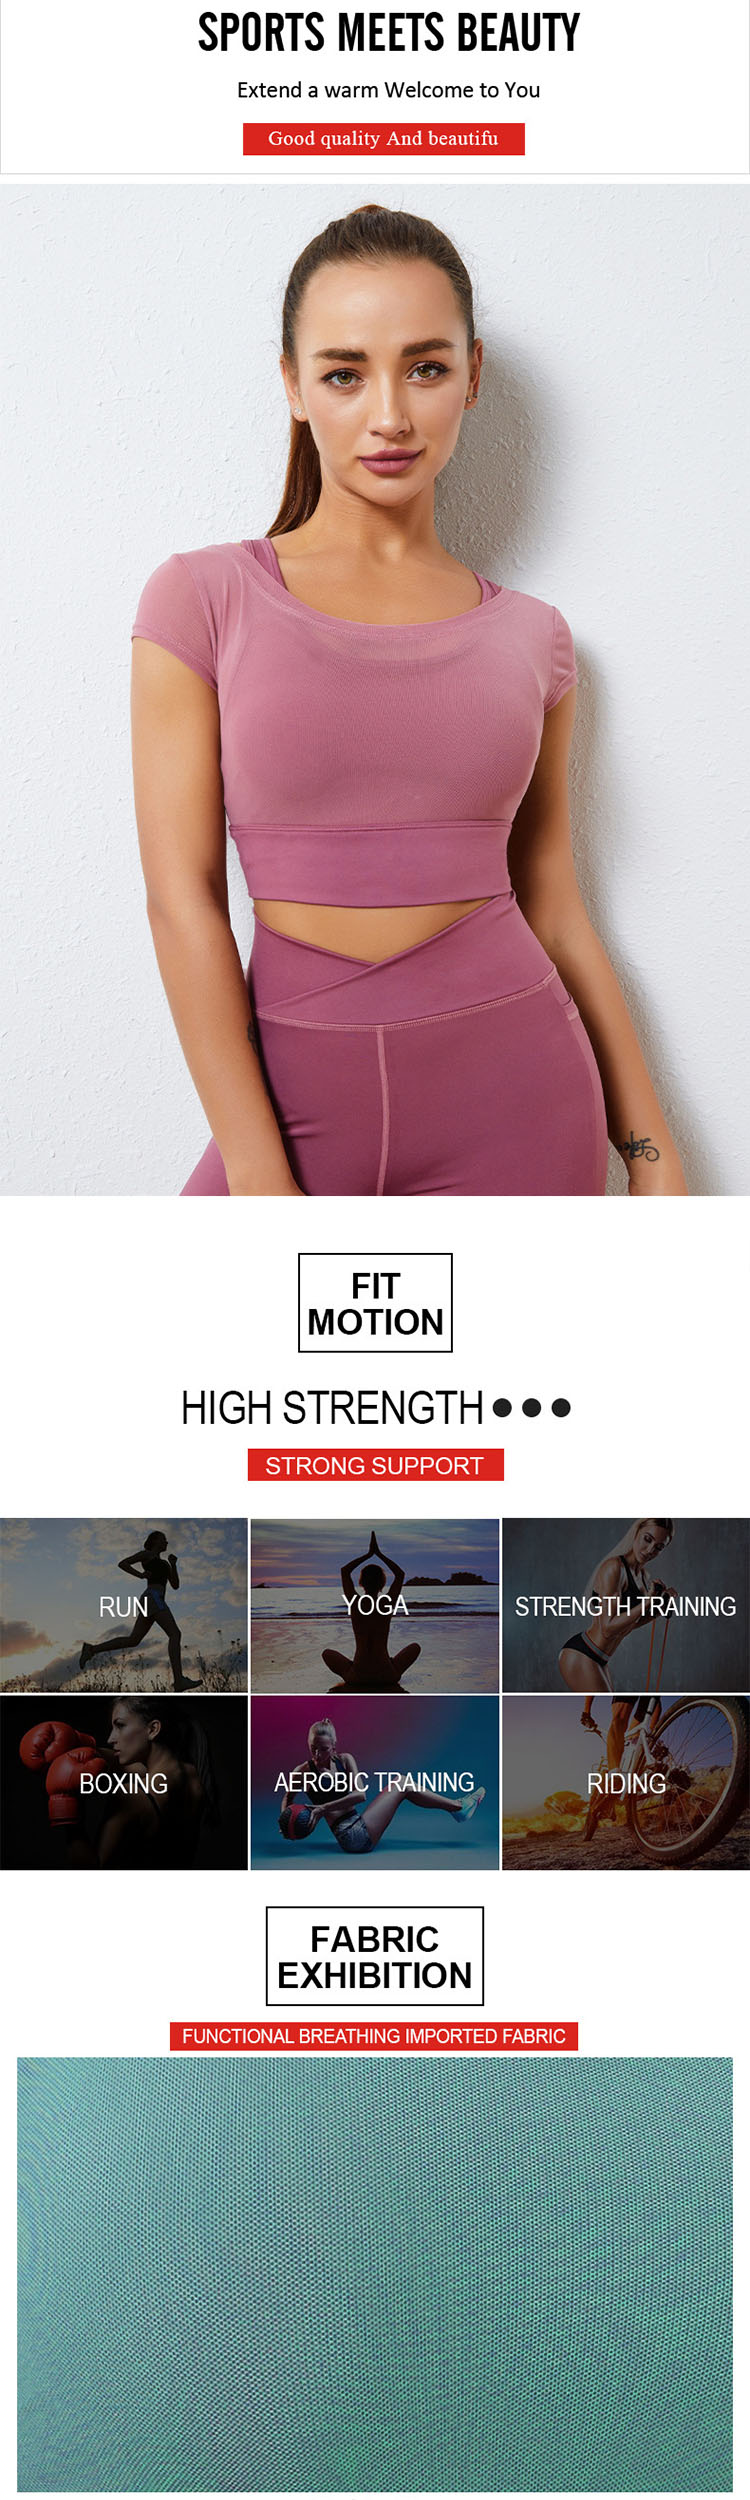 Fashion also likes to fudge. The fake two-piece design of the pink sports bra is very fashionable